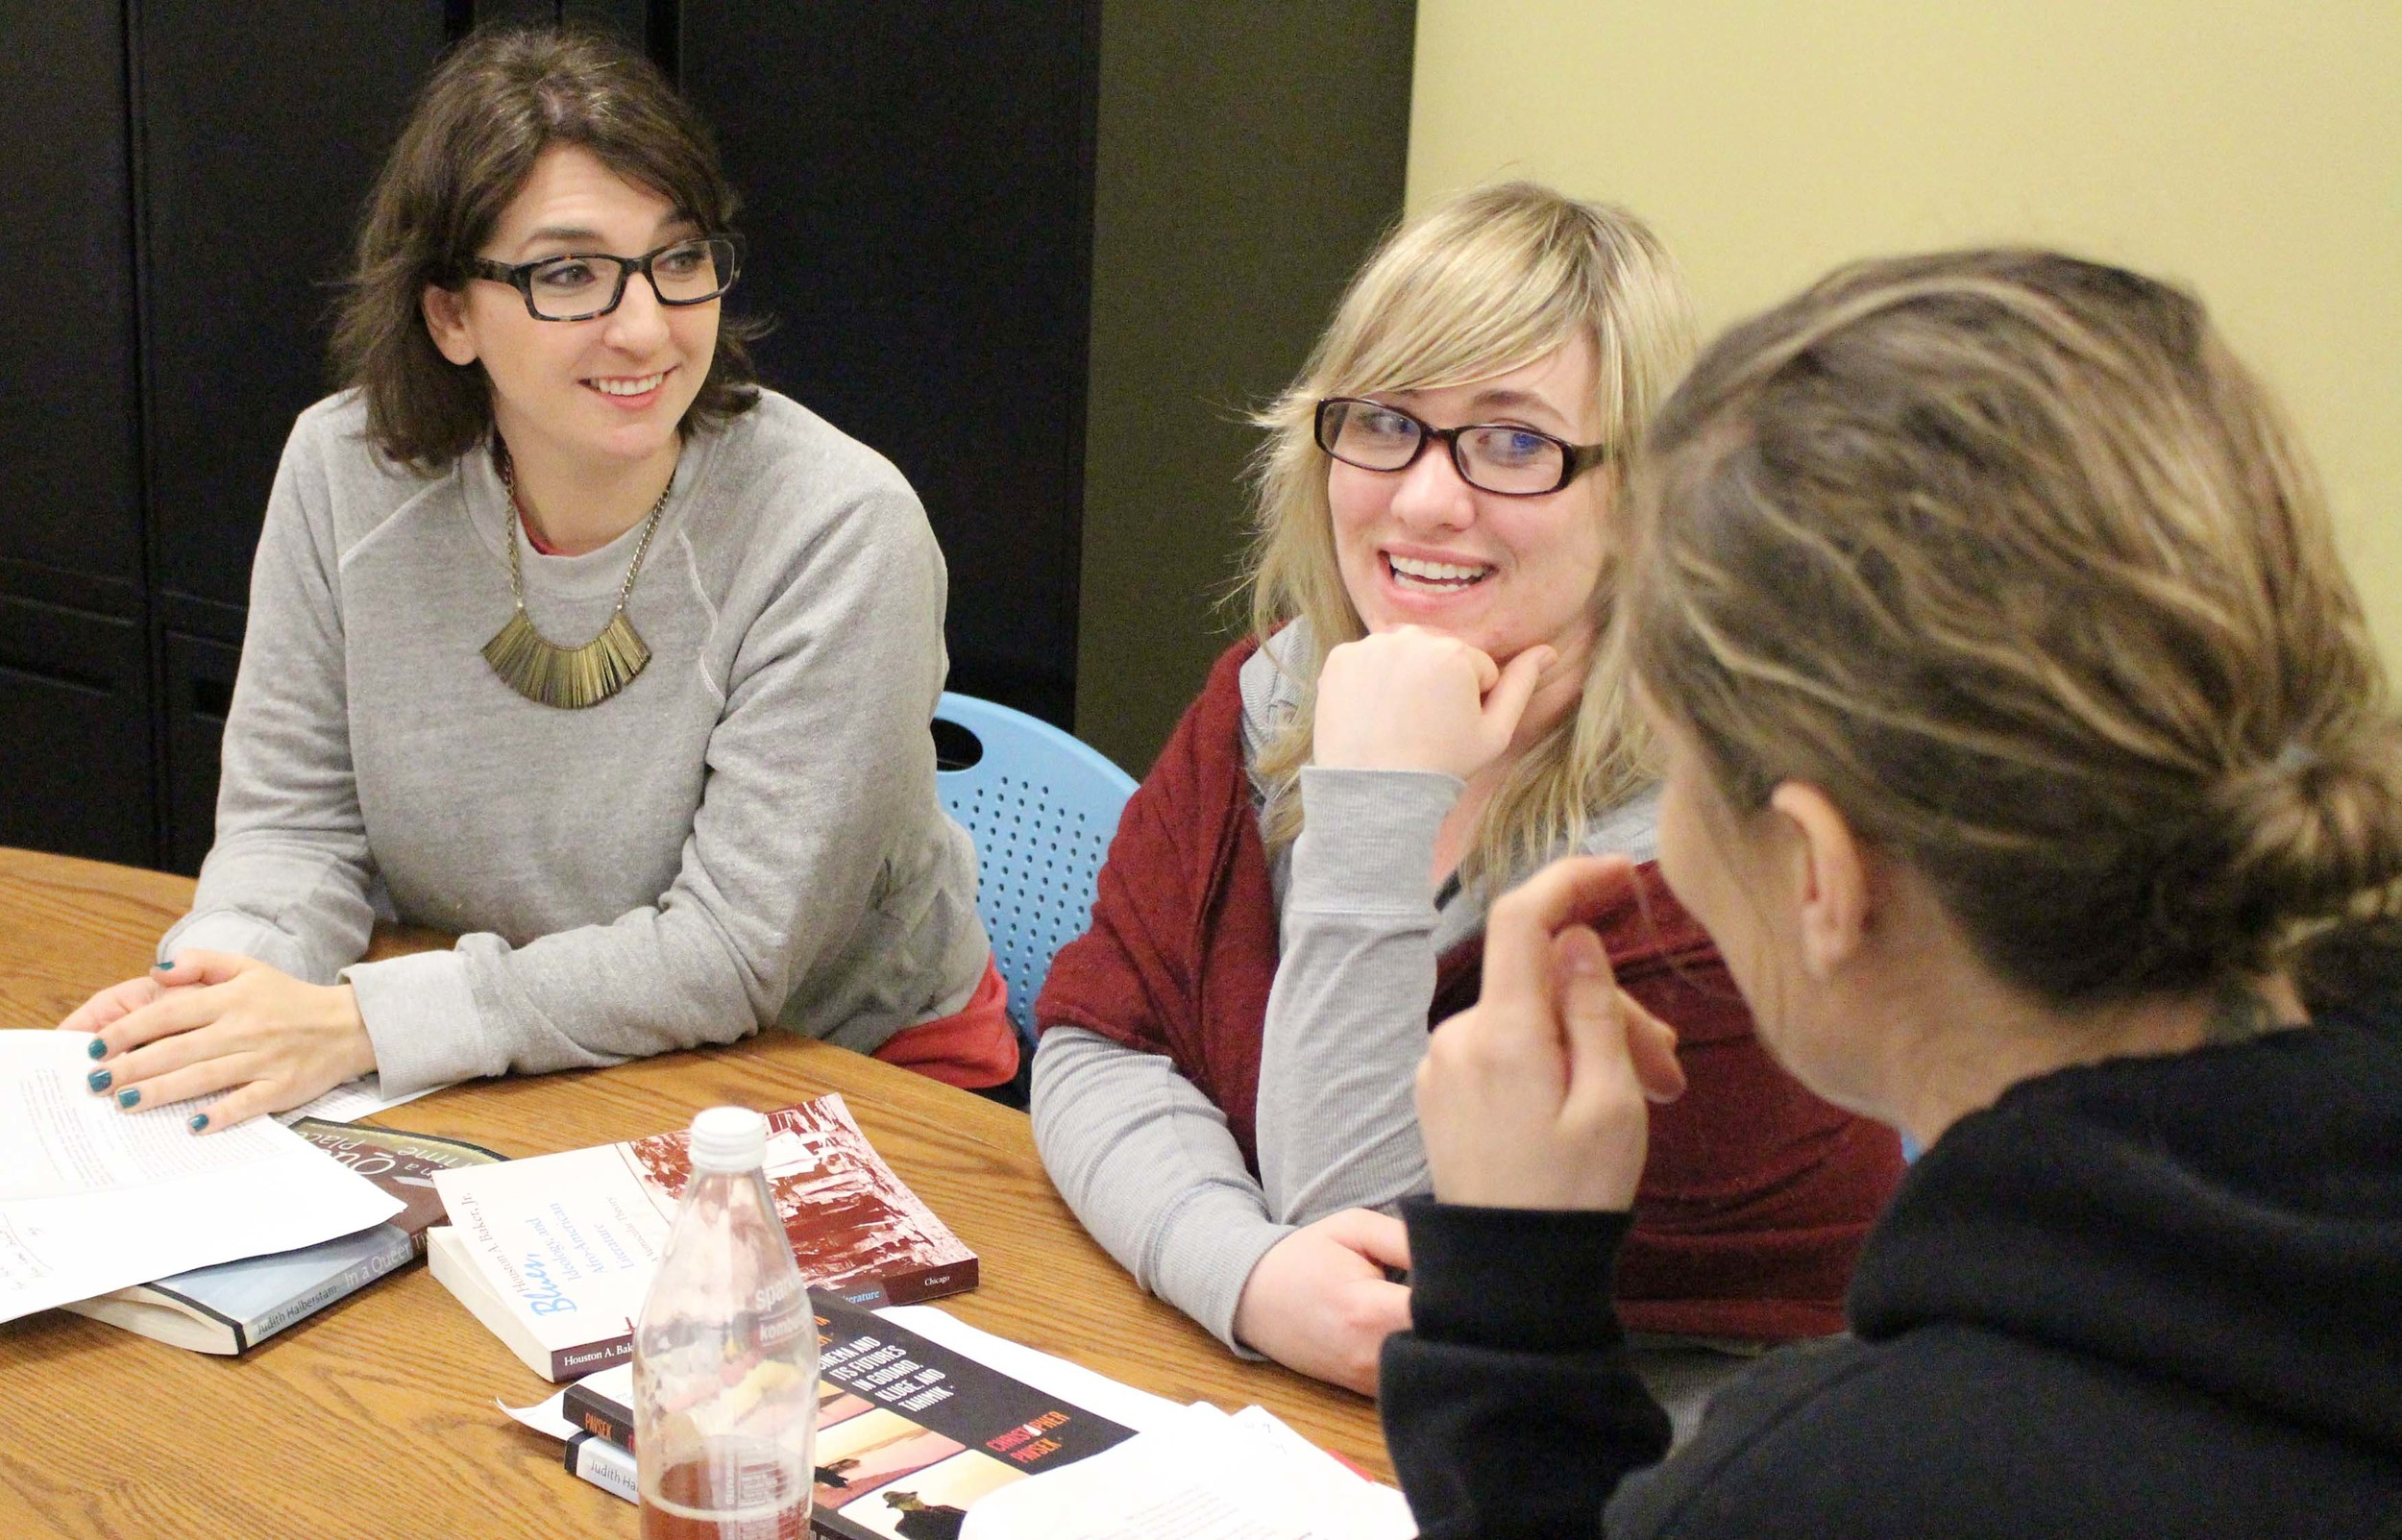 M.A. students Megan Pease, Stephanie MacDonell and Sophia Alioto discuss film theory after class